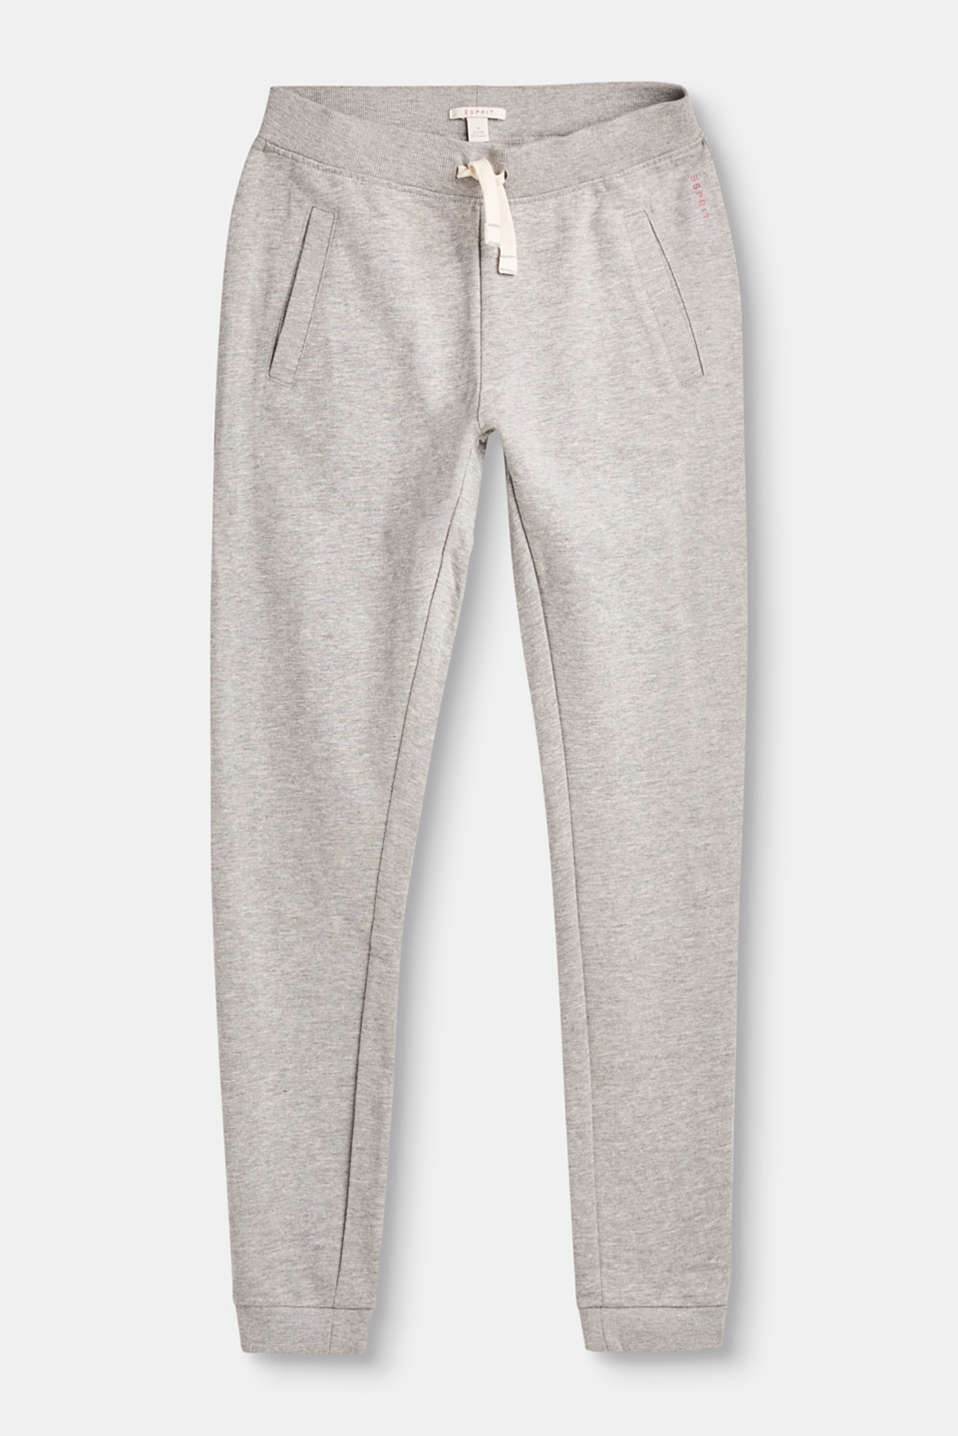 Esprit - Cotton tracksuit bottoms